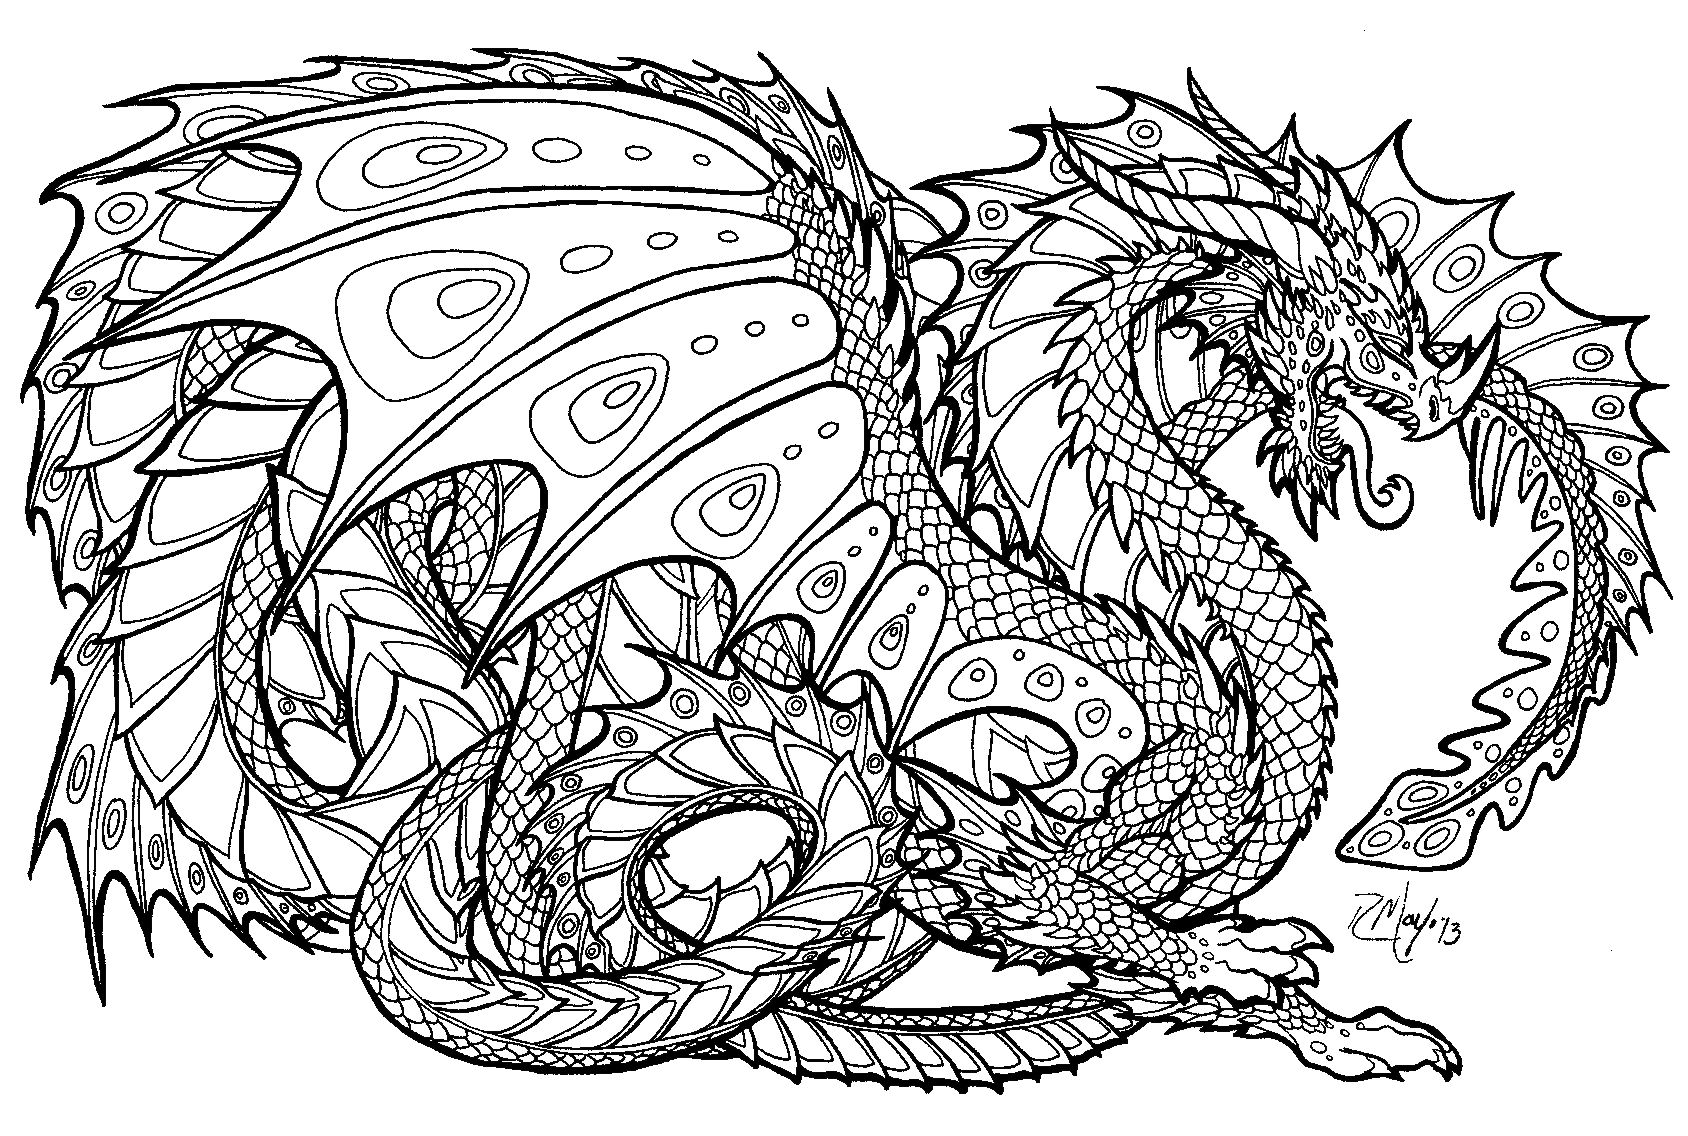 Free Printable Coloring Pages For Adults Advanced Dragons Google Search Detailed Coloring Pages Unicorn Coloring Pages Dragon Coloring Page